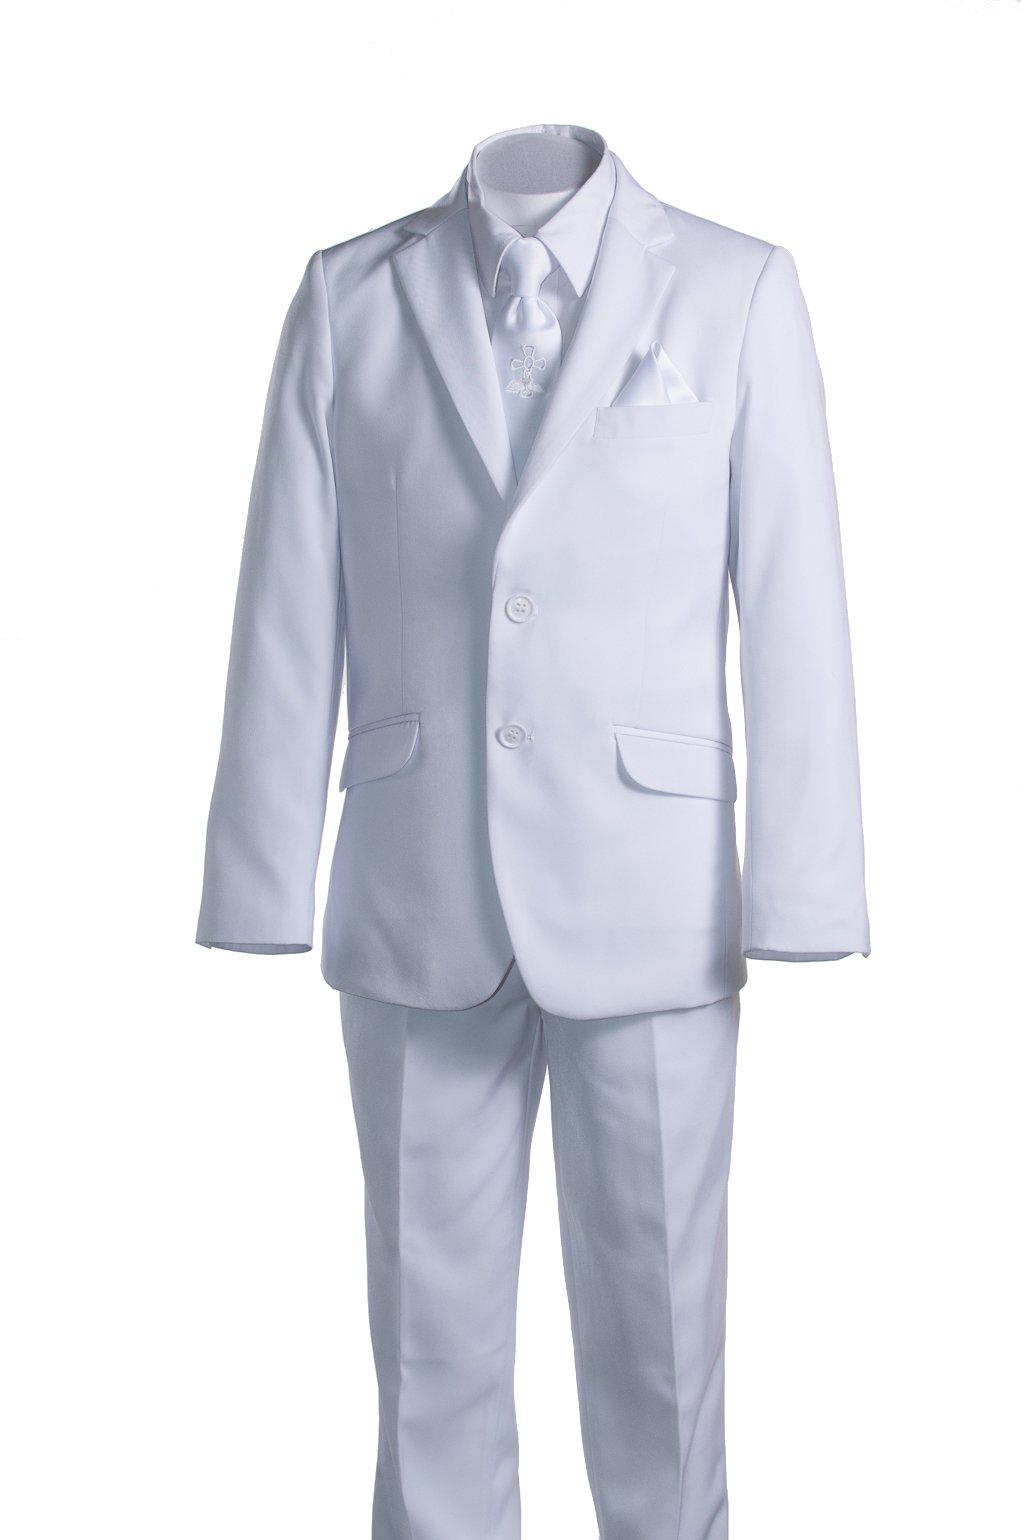 Boys Slim Fit White Suit, Communion Cross Tie, Suspenders & Handkerchief (5 Boys)